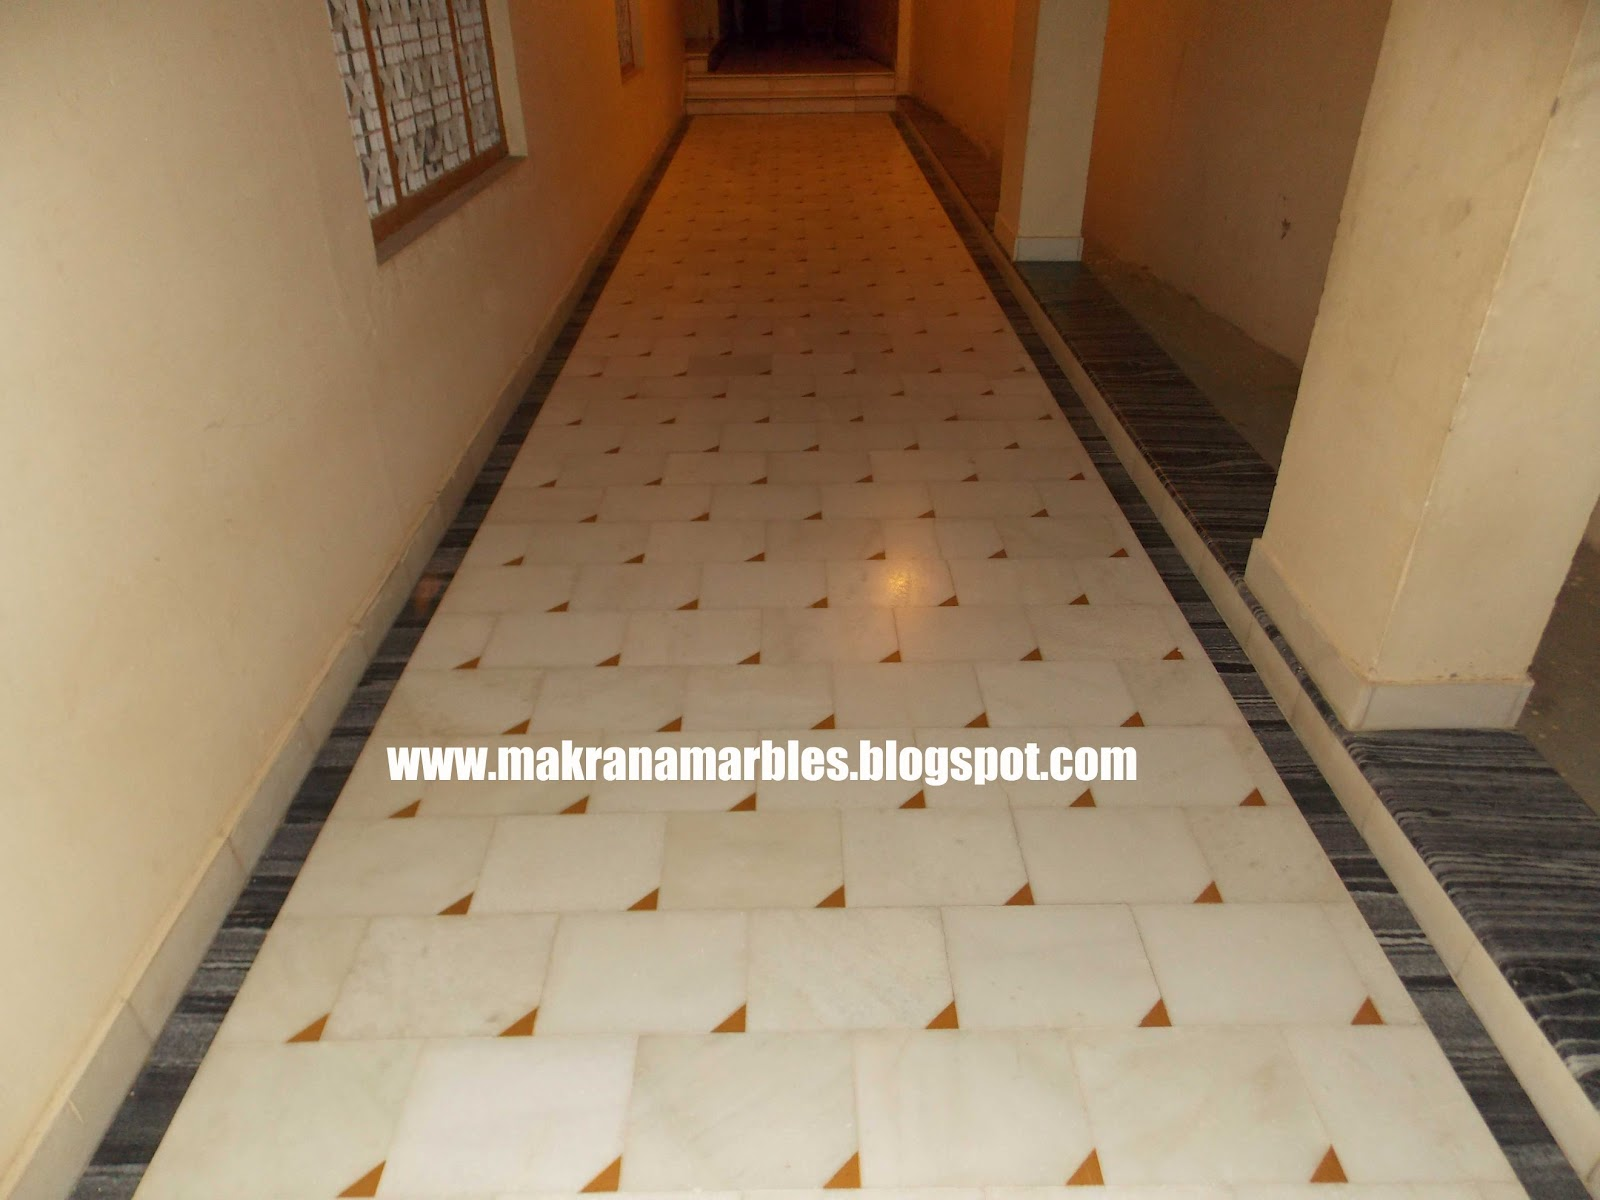 Marble Flooring Pattern : Makrana marble product and pricing details flooring pattern